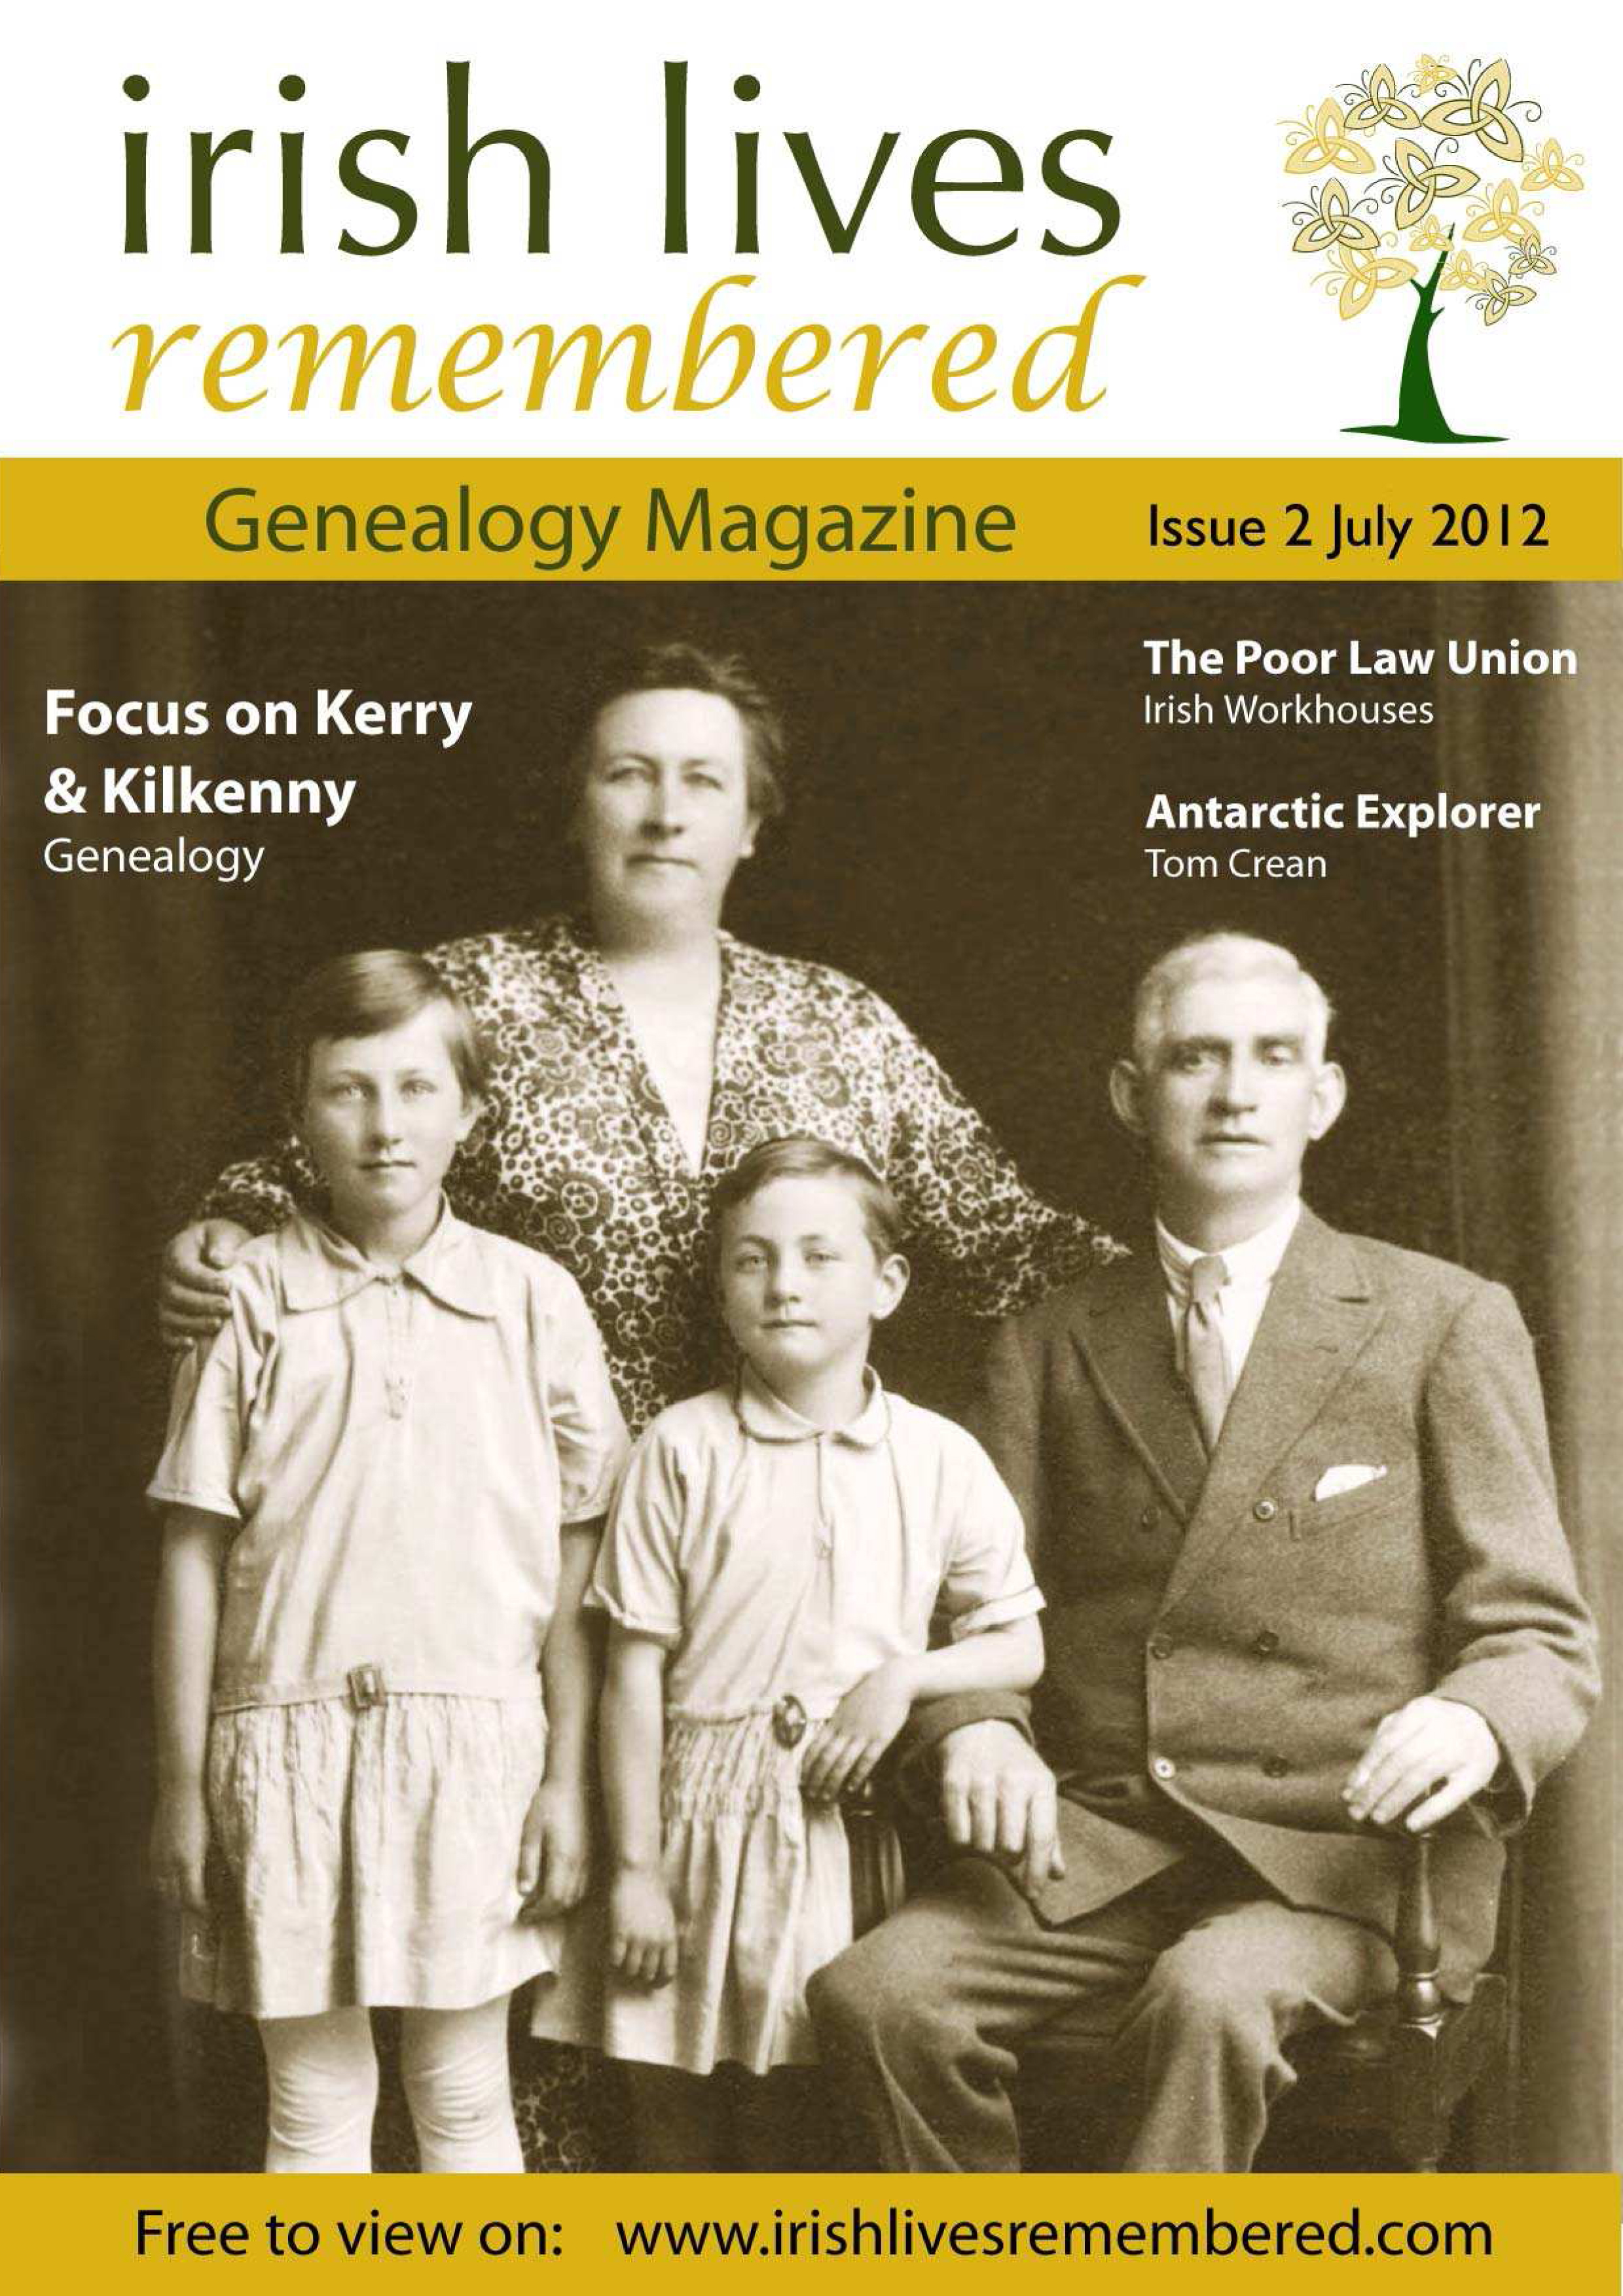 photo of Irish Lives Remembered Issue 2 July 2012